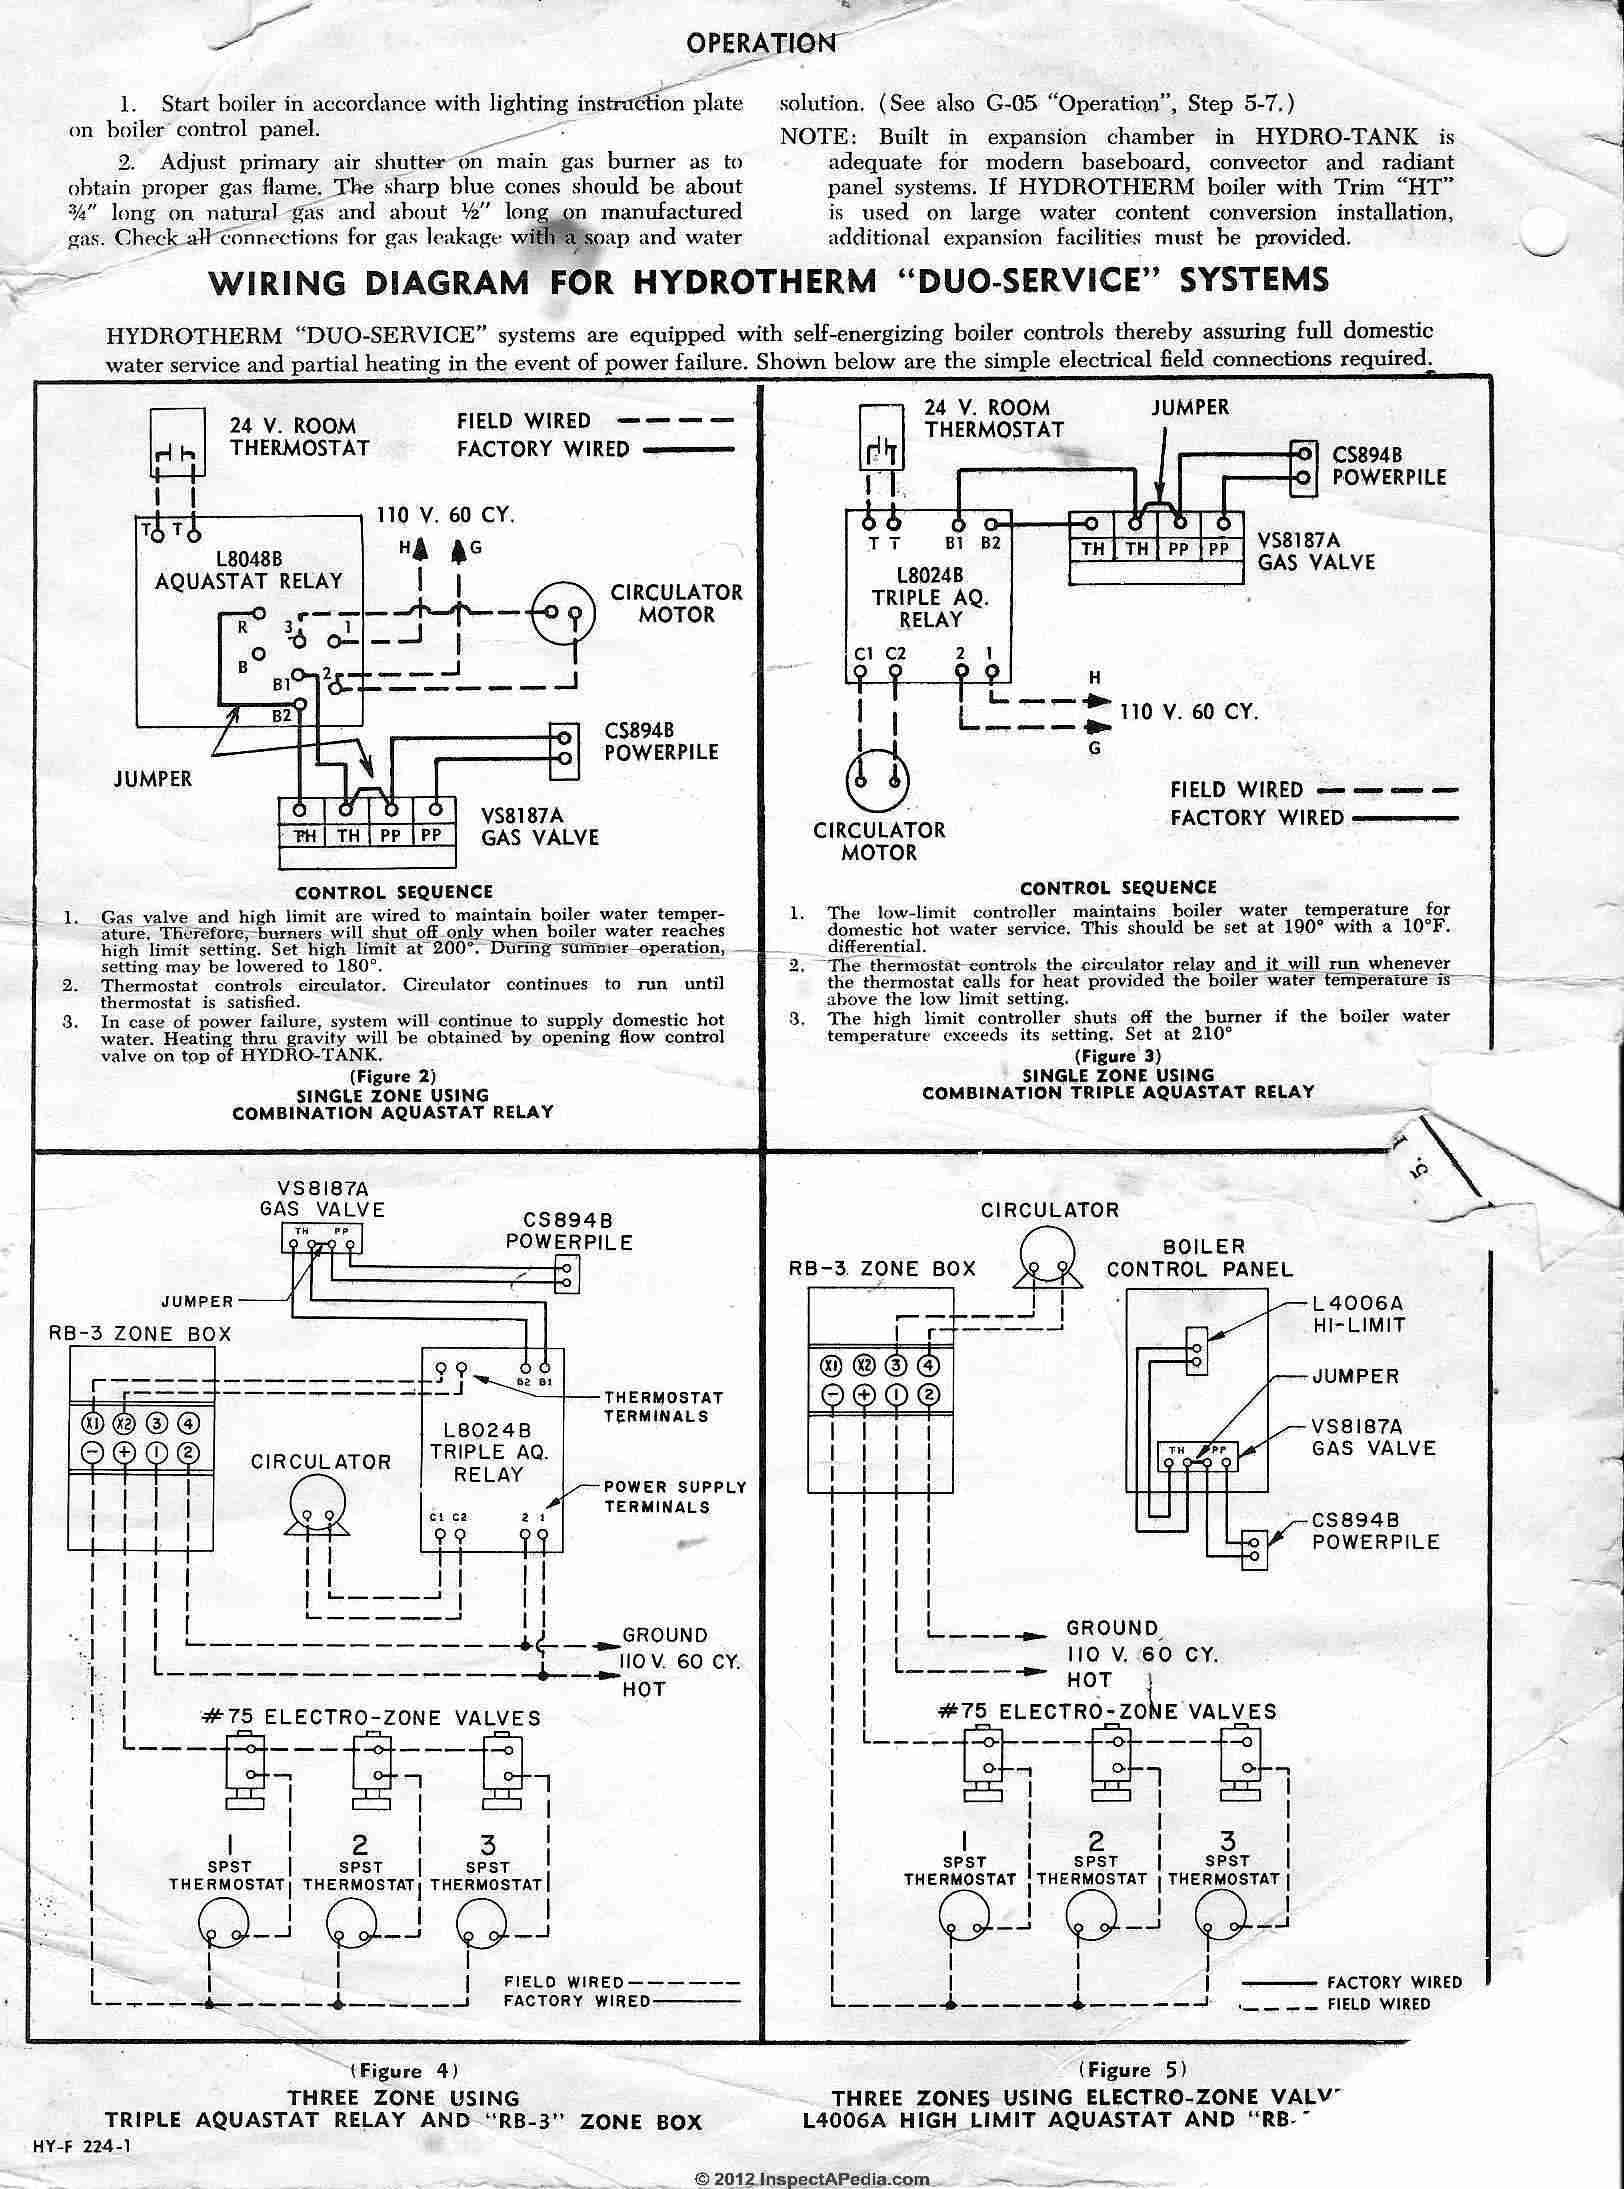 L8024B_Aquastat_0422_DJFcs heating boiler aquastat control diagnosis, troubleshooting, repair imit boiler thermostat wiring diagram at crackthecode.co